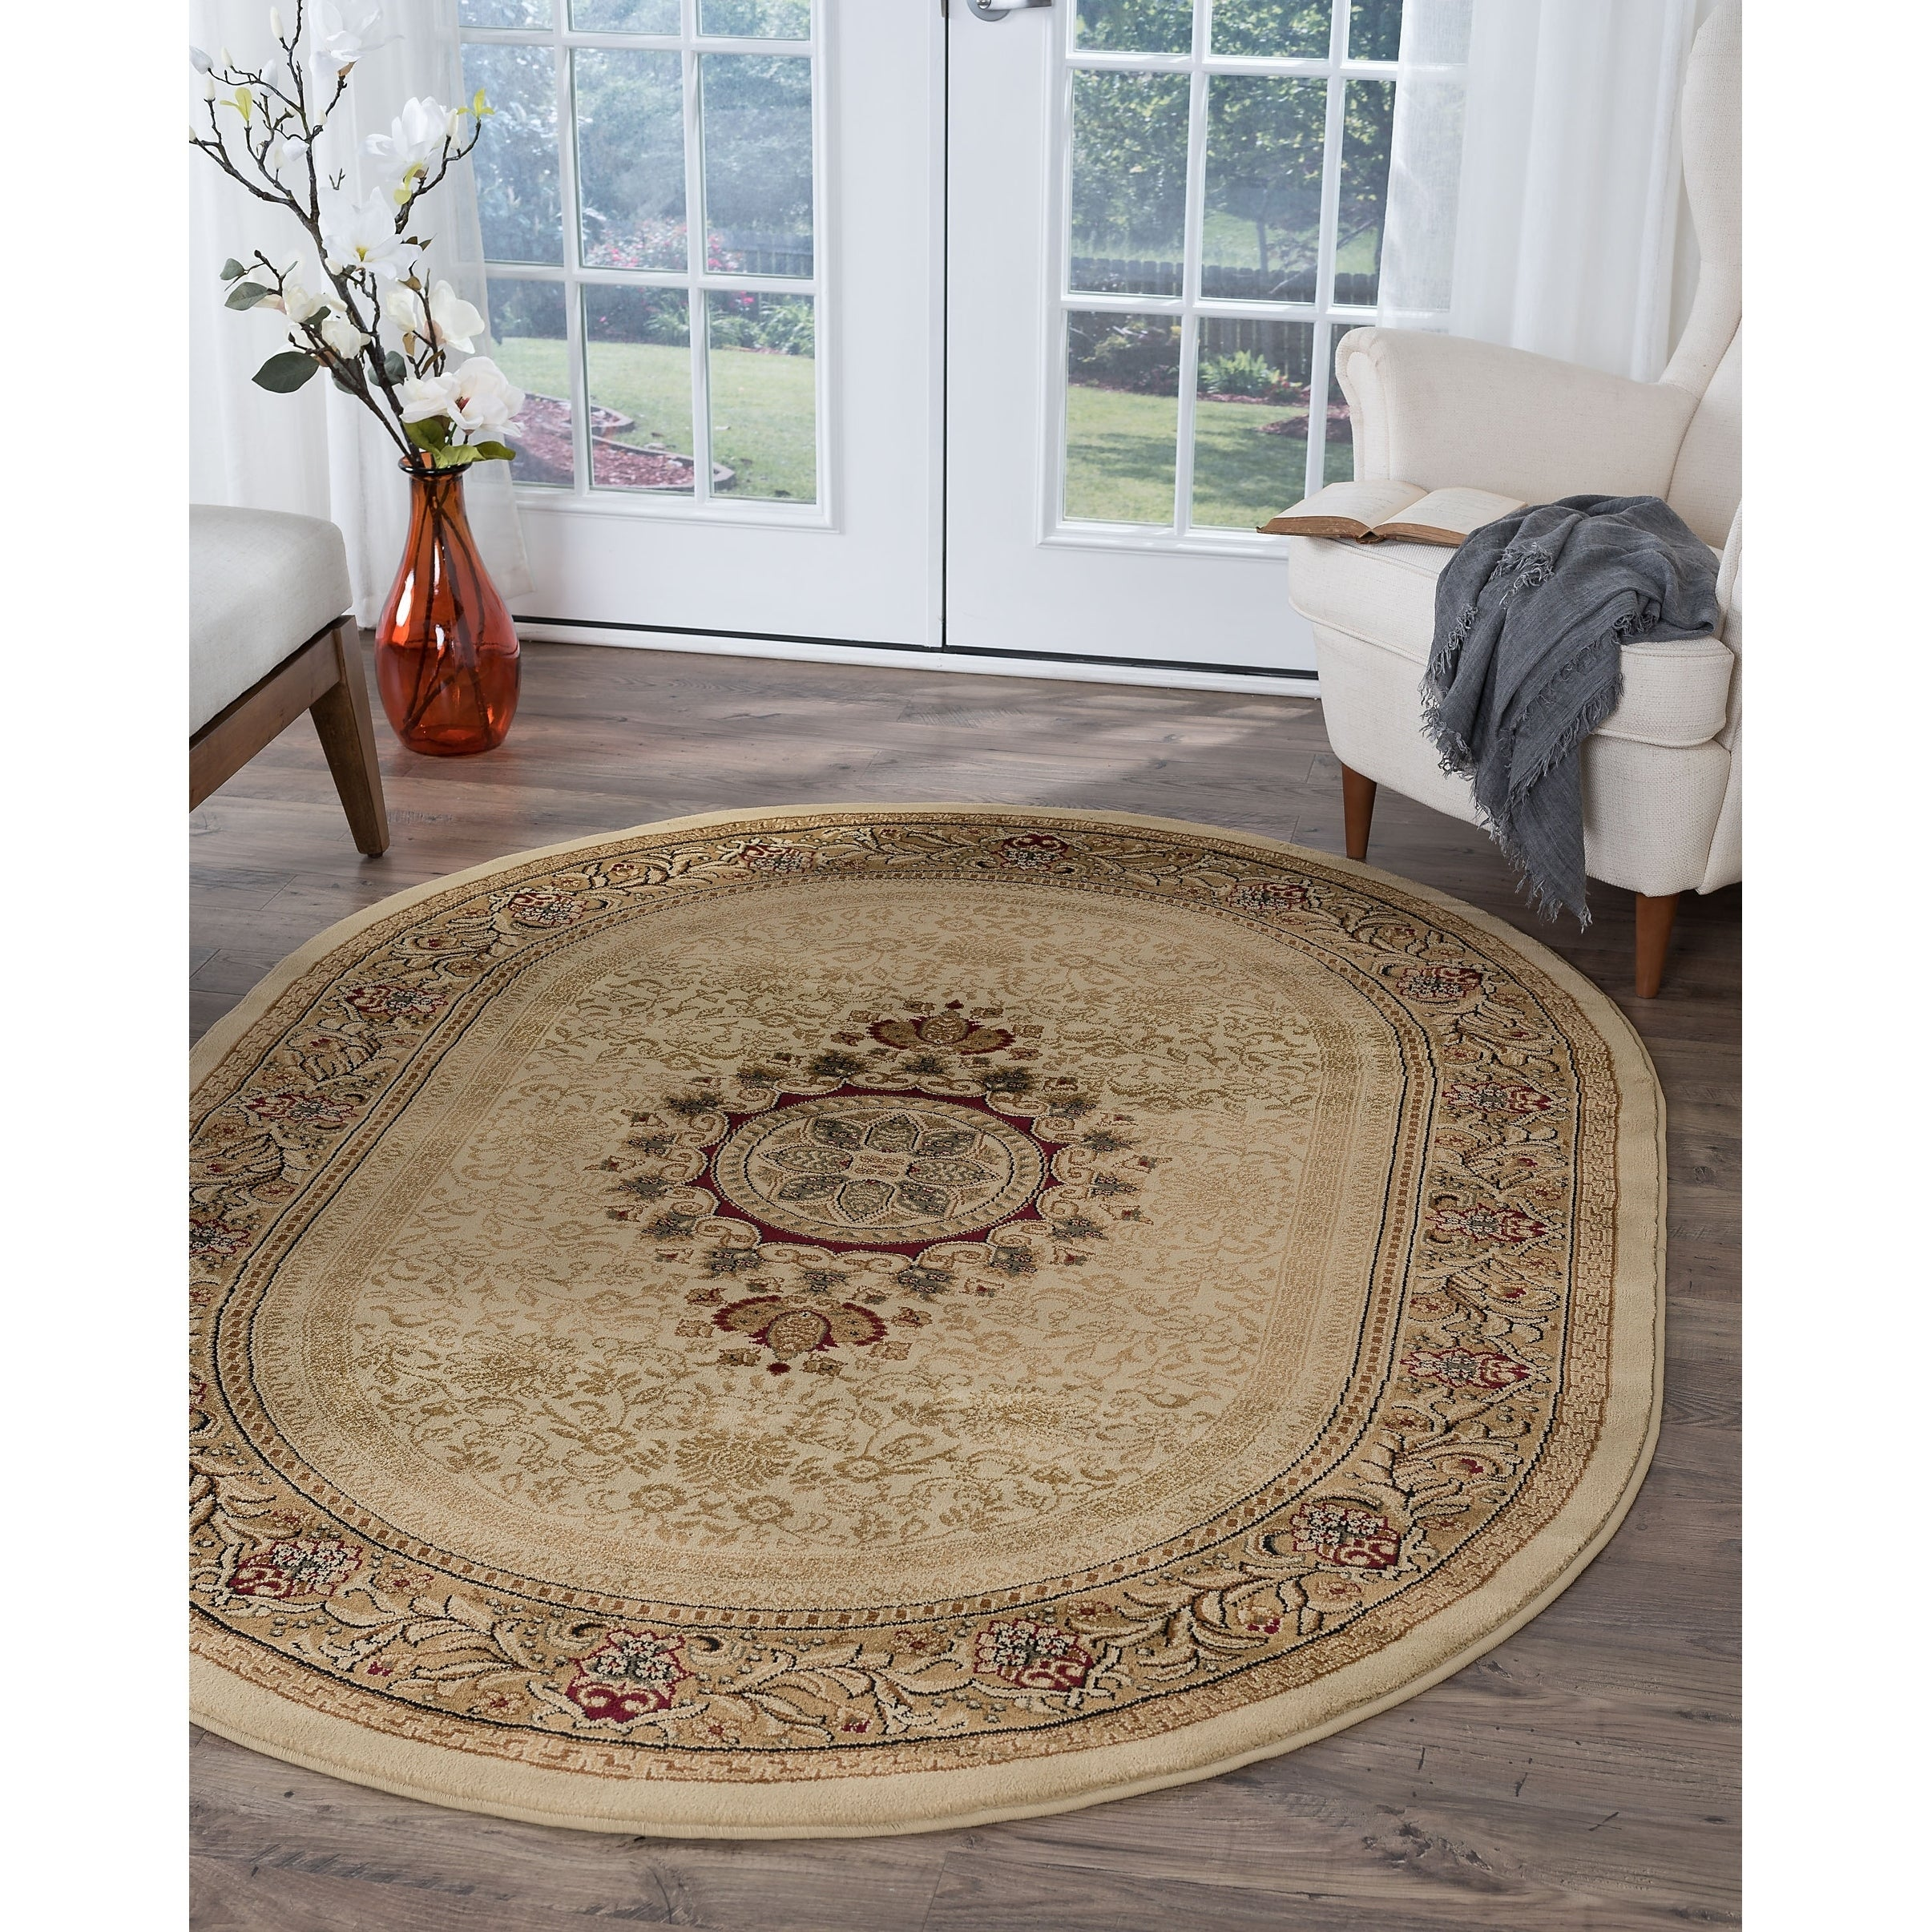 Image of: Shop Alise Rugs Soho Traditional Oriental Oval Area Rug 5 3 X 7 3 Overstock 9306929